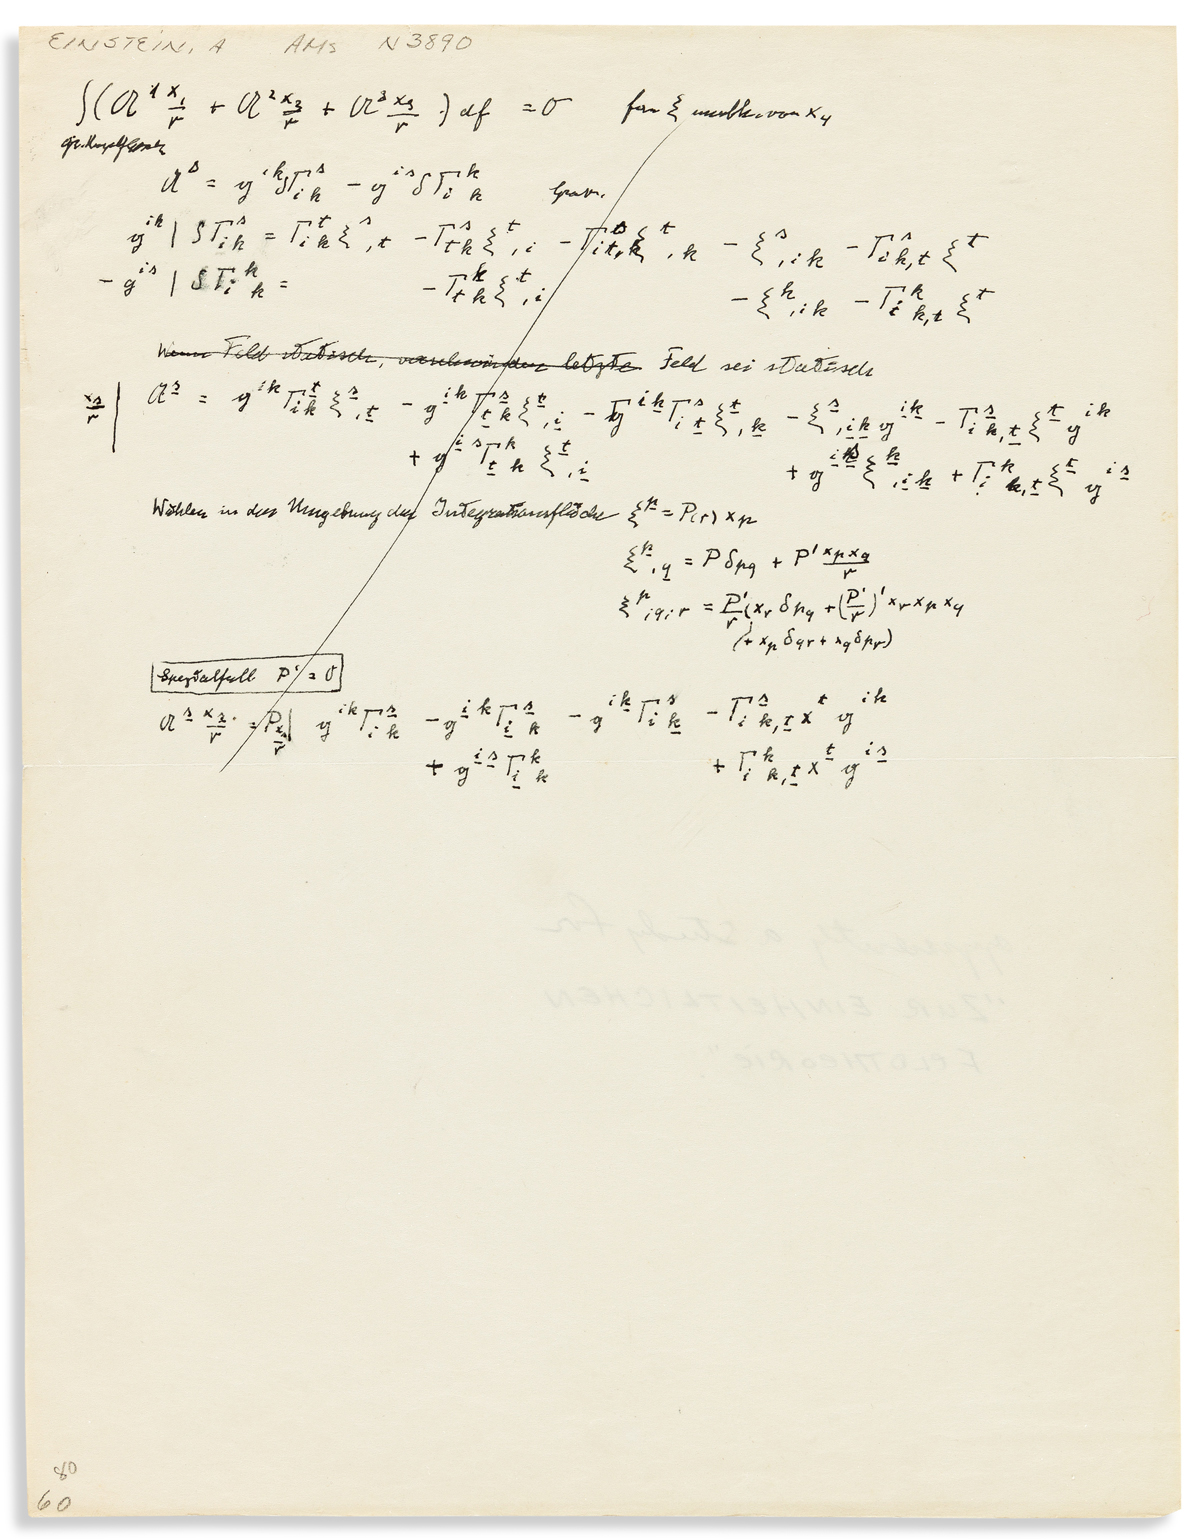 EINSTEIN, ALBERT. Autograph Manuscript, unsigned, in German, 11 lines of equations and three lines of text relating to a static field r